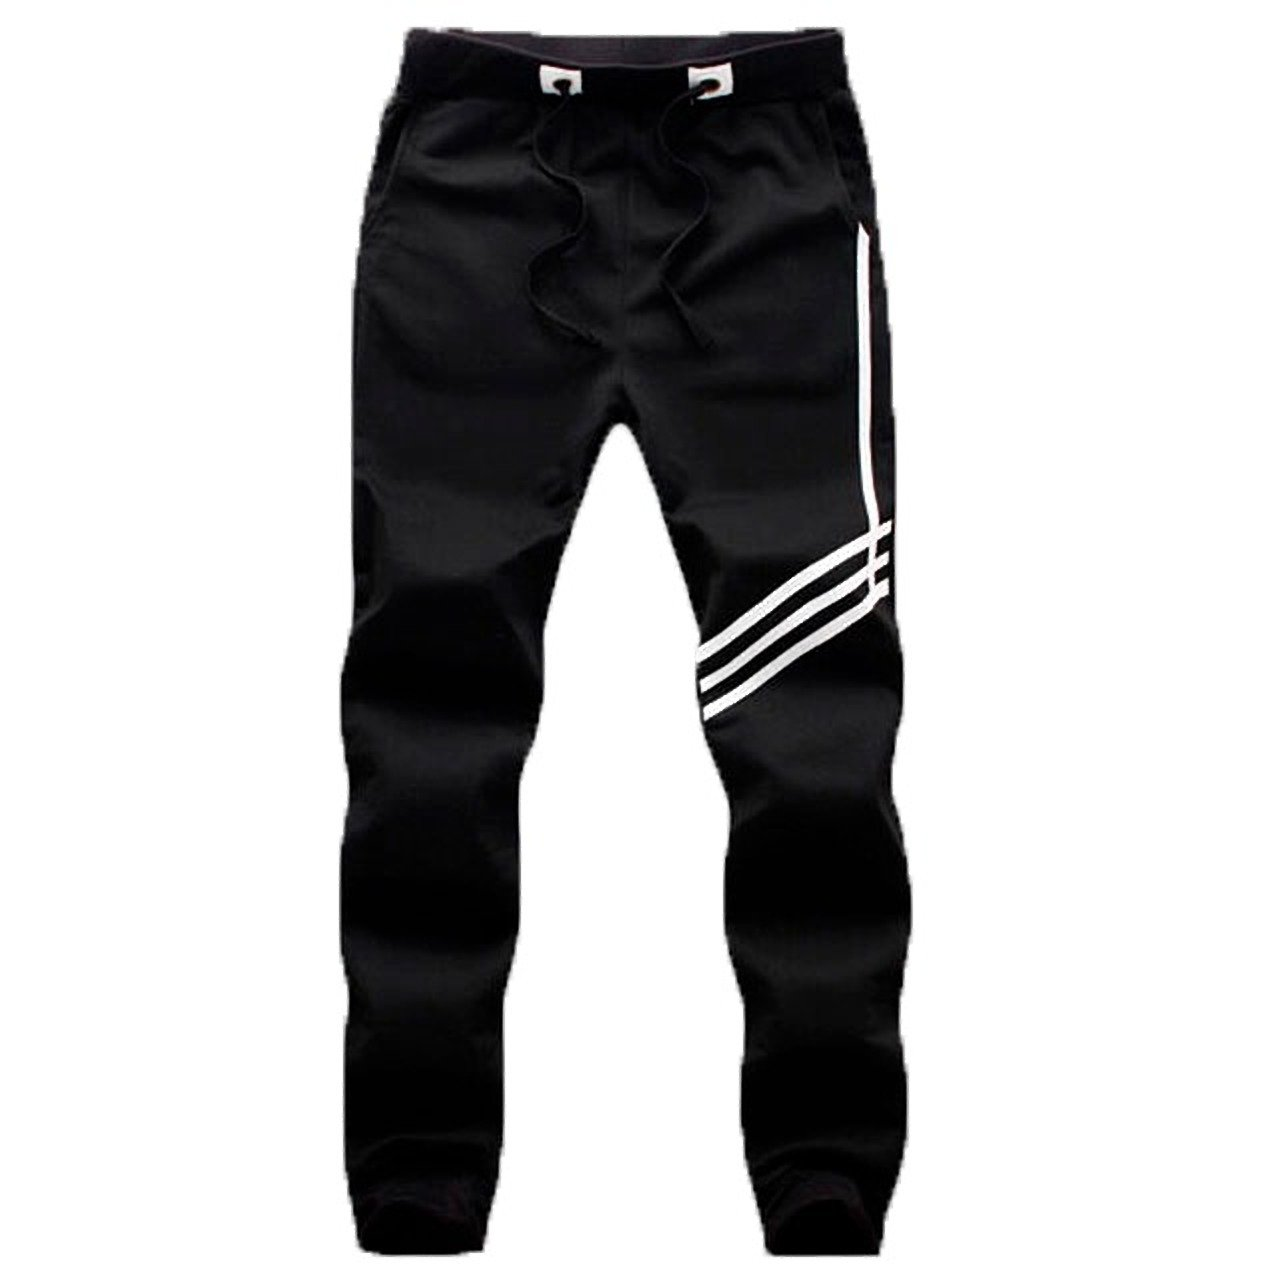 0d7ab85889404 PFlex Men's Soccer Training Pants – Tapered fit Joggers– Zippered Pockets –  Comfortable Sweatpants –